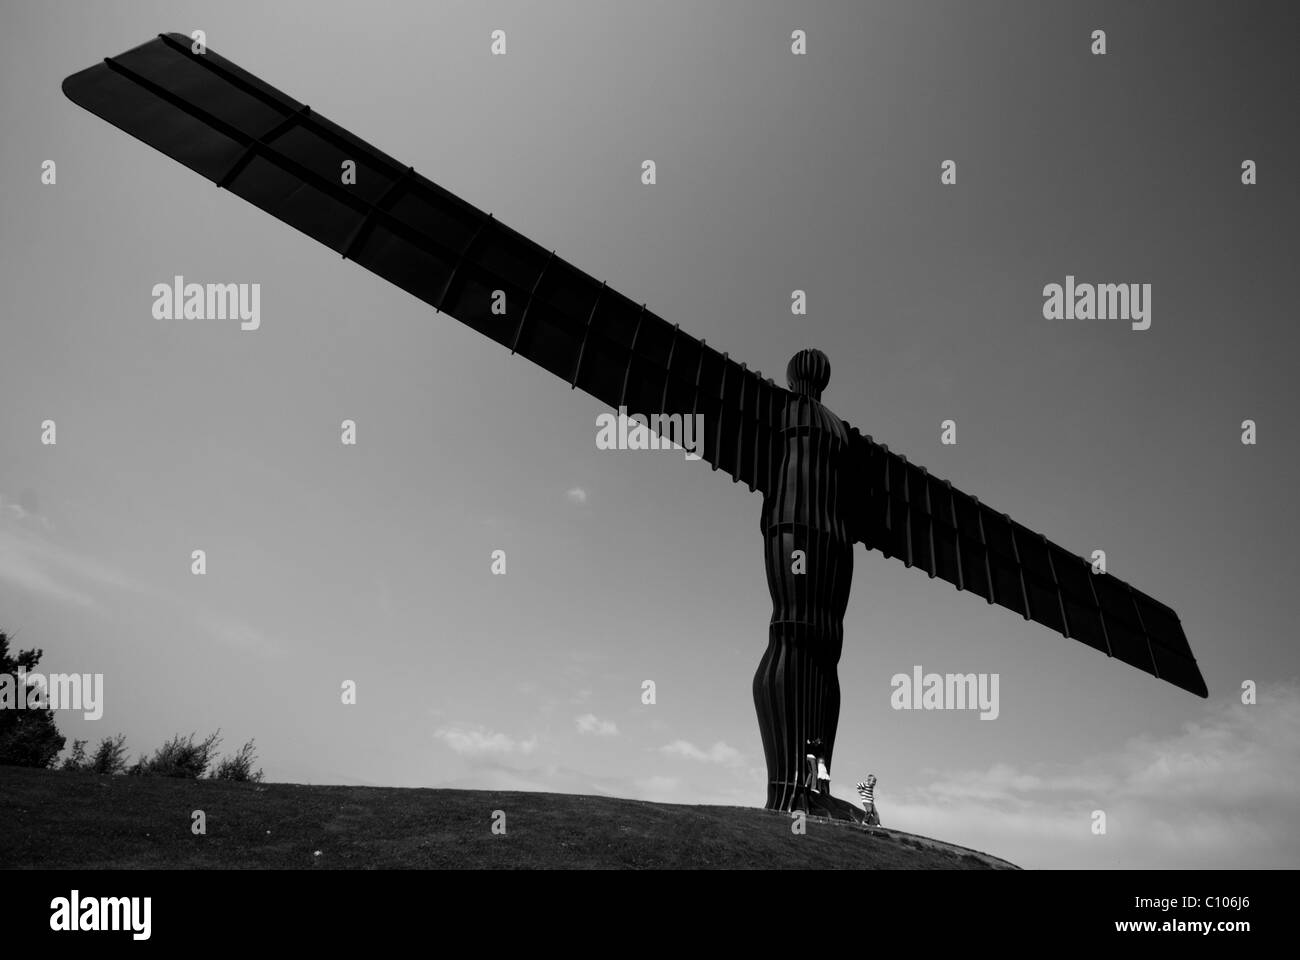 A photograph of the Angel of the North, which overlooks the A1 at Teeside, near to Newcastle and Tyneside - Stock Image